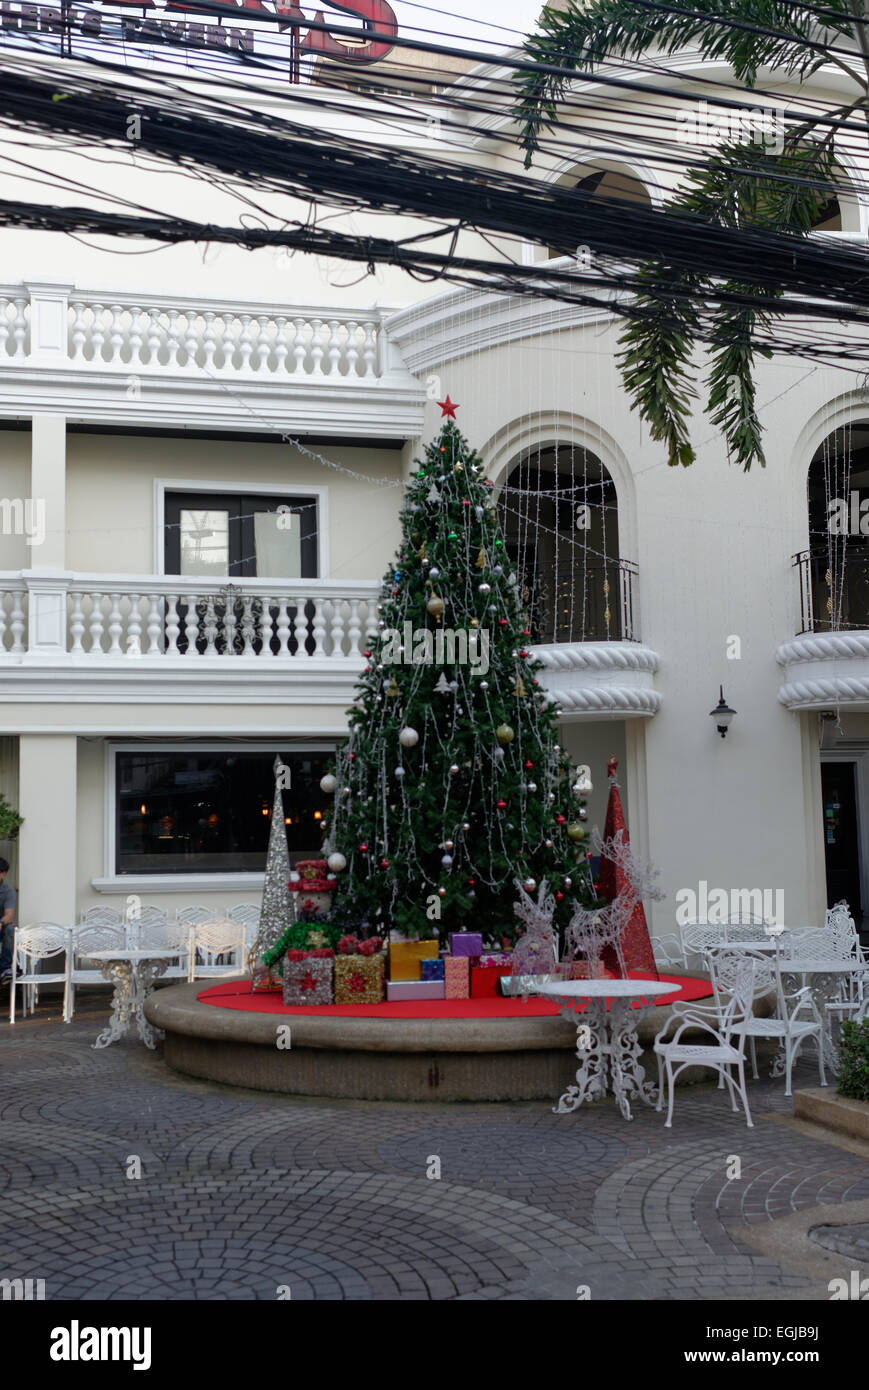 Christmas Tree outside Gulliver's Bar, Bangkok, Thailand with chaotic overhead cables - Stock Image